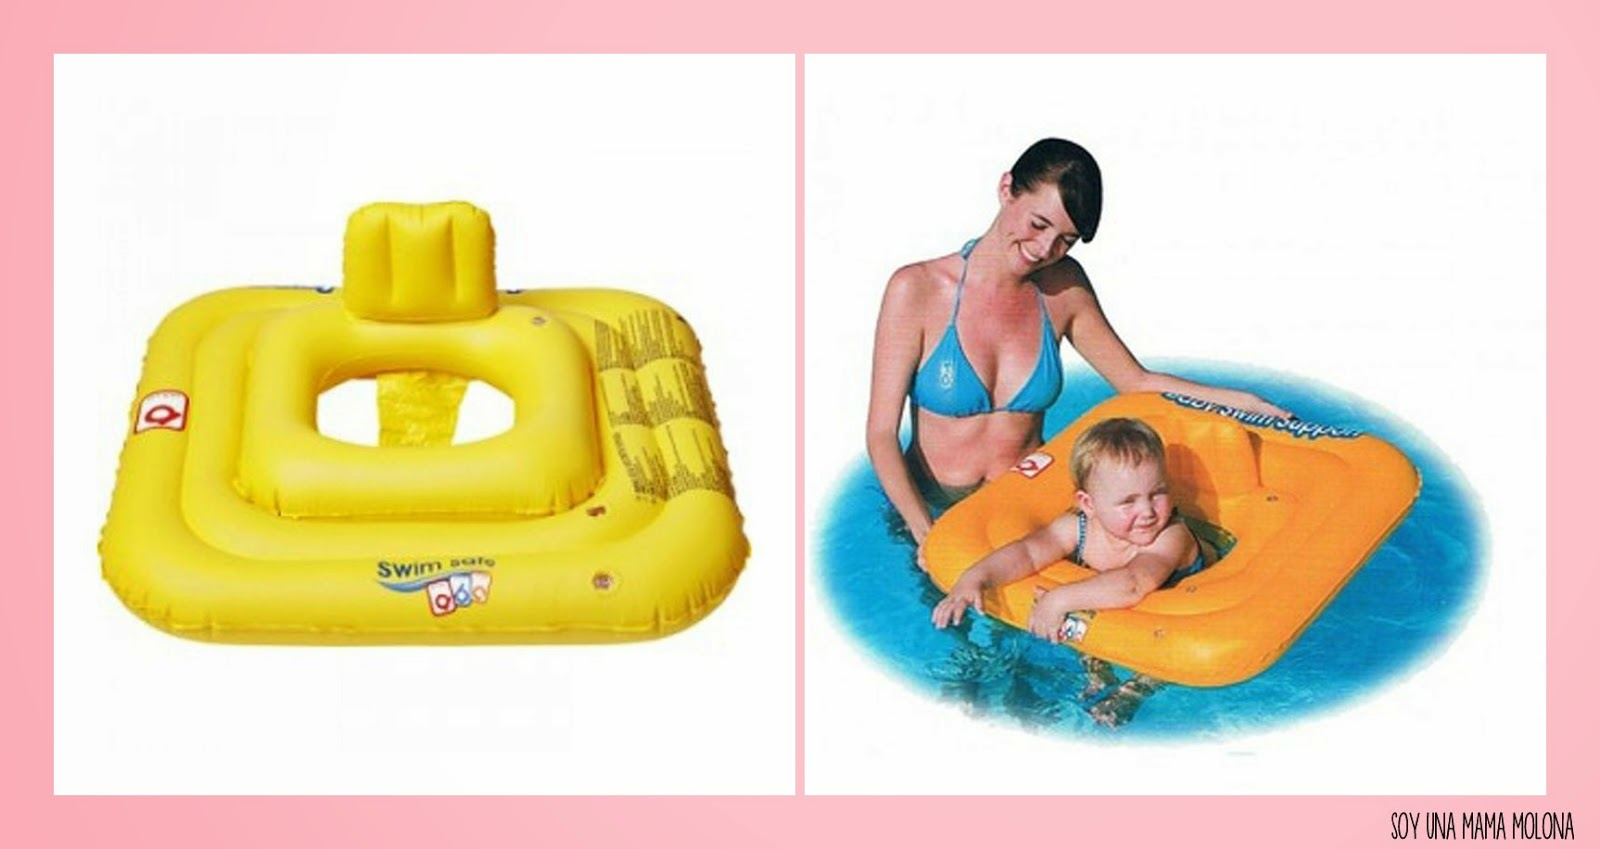 Seguridad en la piscina y en el mar blogs de madres y bebes - Piscina bebe decathlon ...